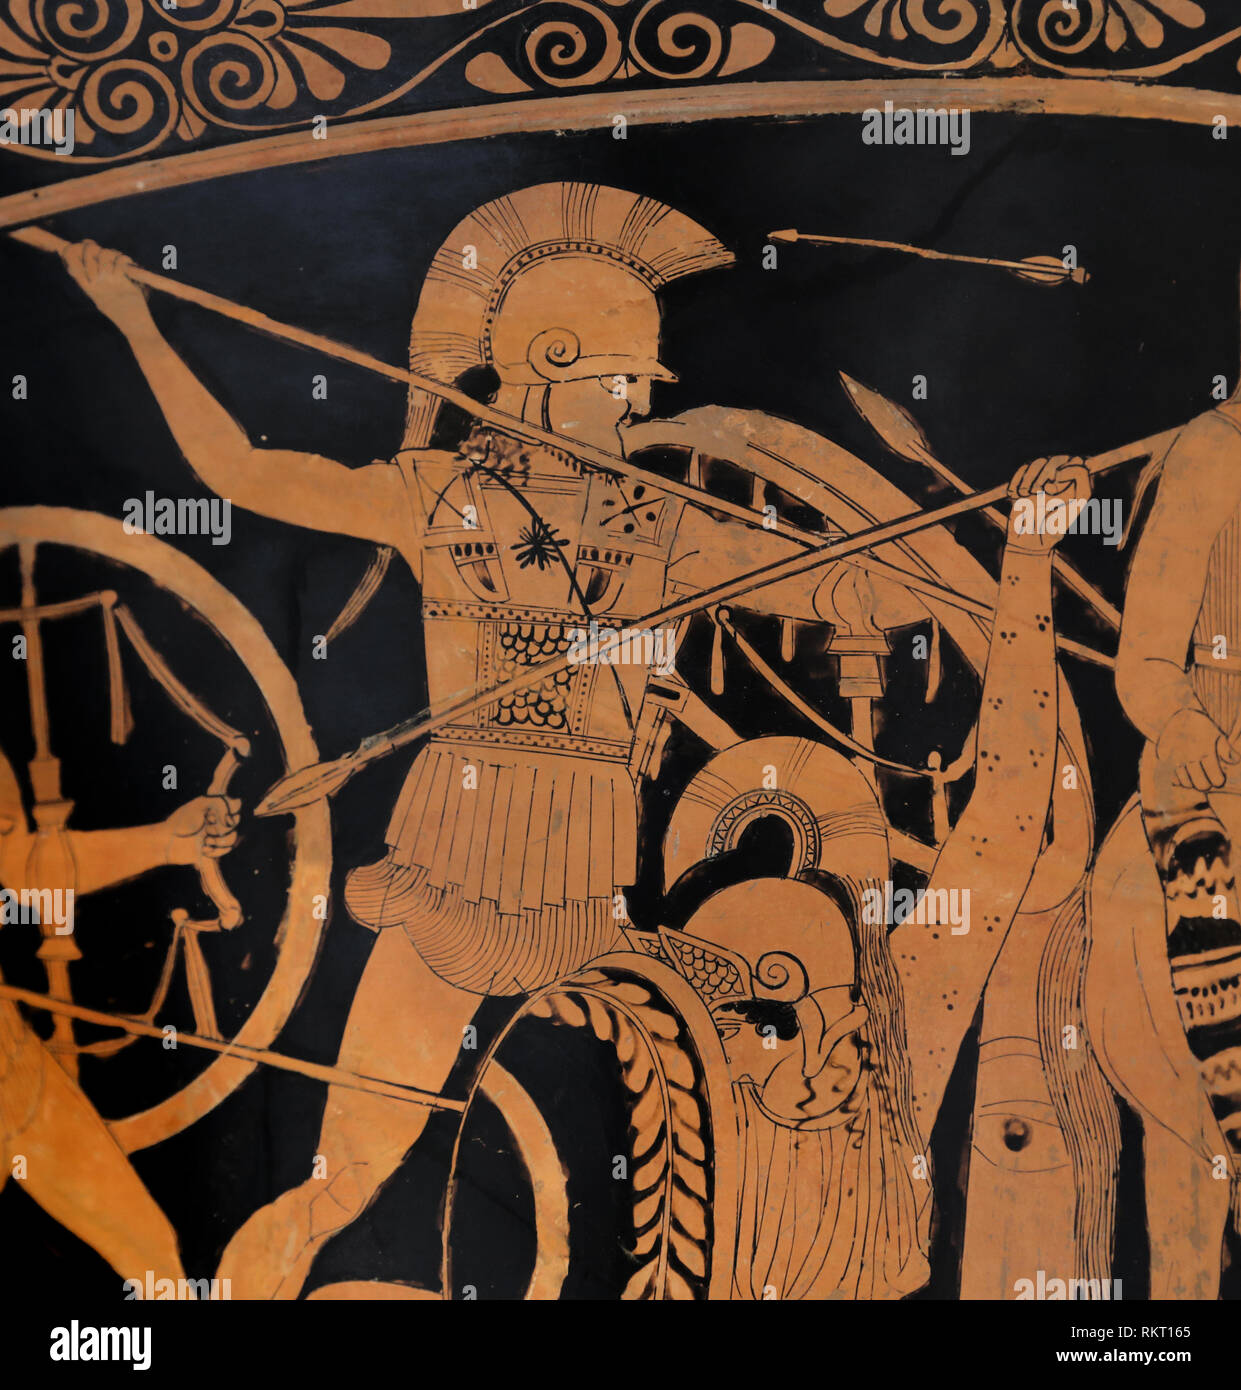 Terracota calyx-krater. Greek, Attic, red-figure. 460-450 BC. Paitenter of the Berlin Hydria. Amazonomachy. The Met. NY, USA - Stock Image